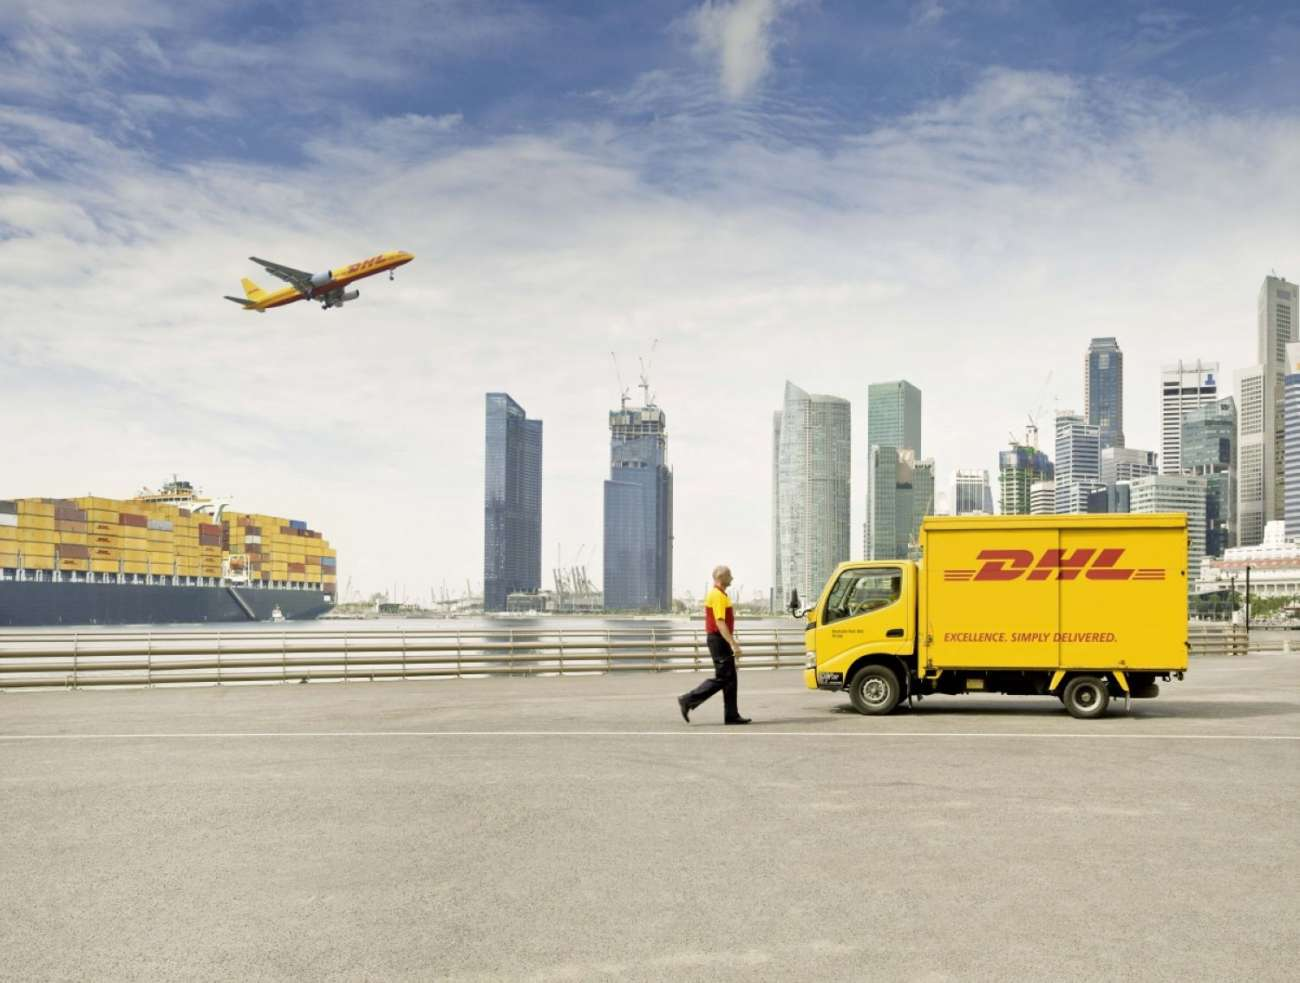 DHL unterstützt den Mobiltelefonhersteller Transsion Holdings mit Logistikdienstleistungen bei Expansion in den Schwellenländern. (Foto: Deutsche Post DHL Group)